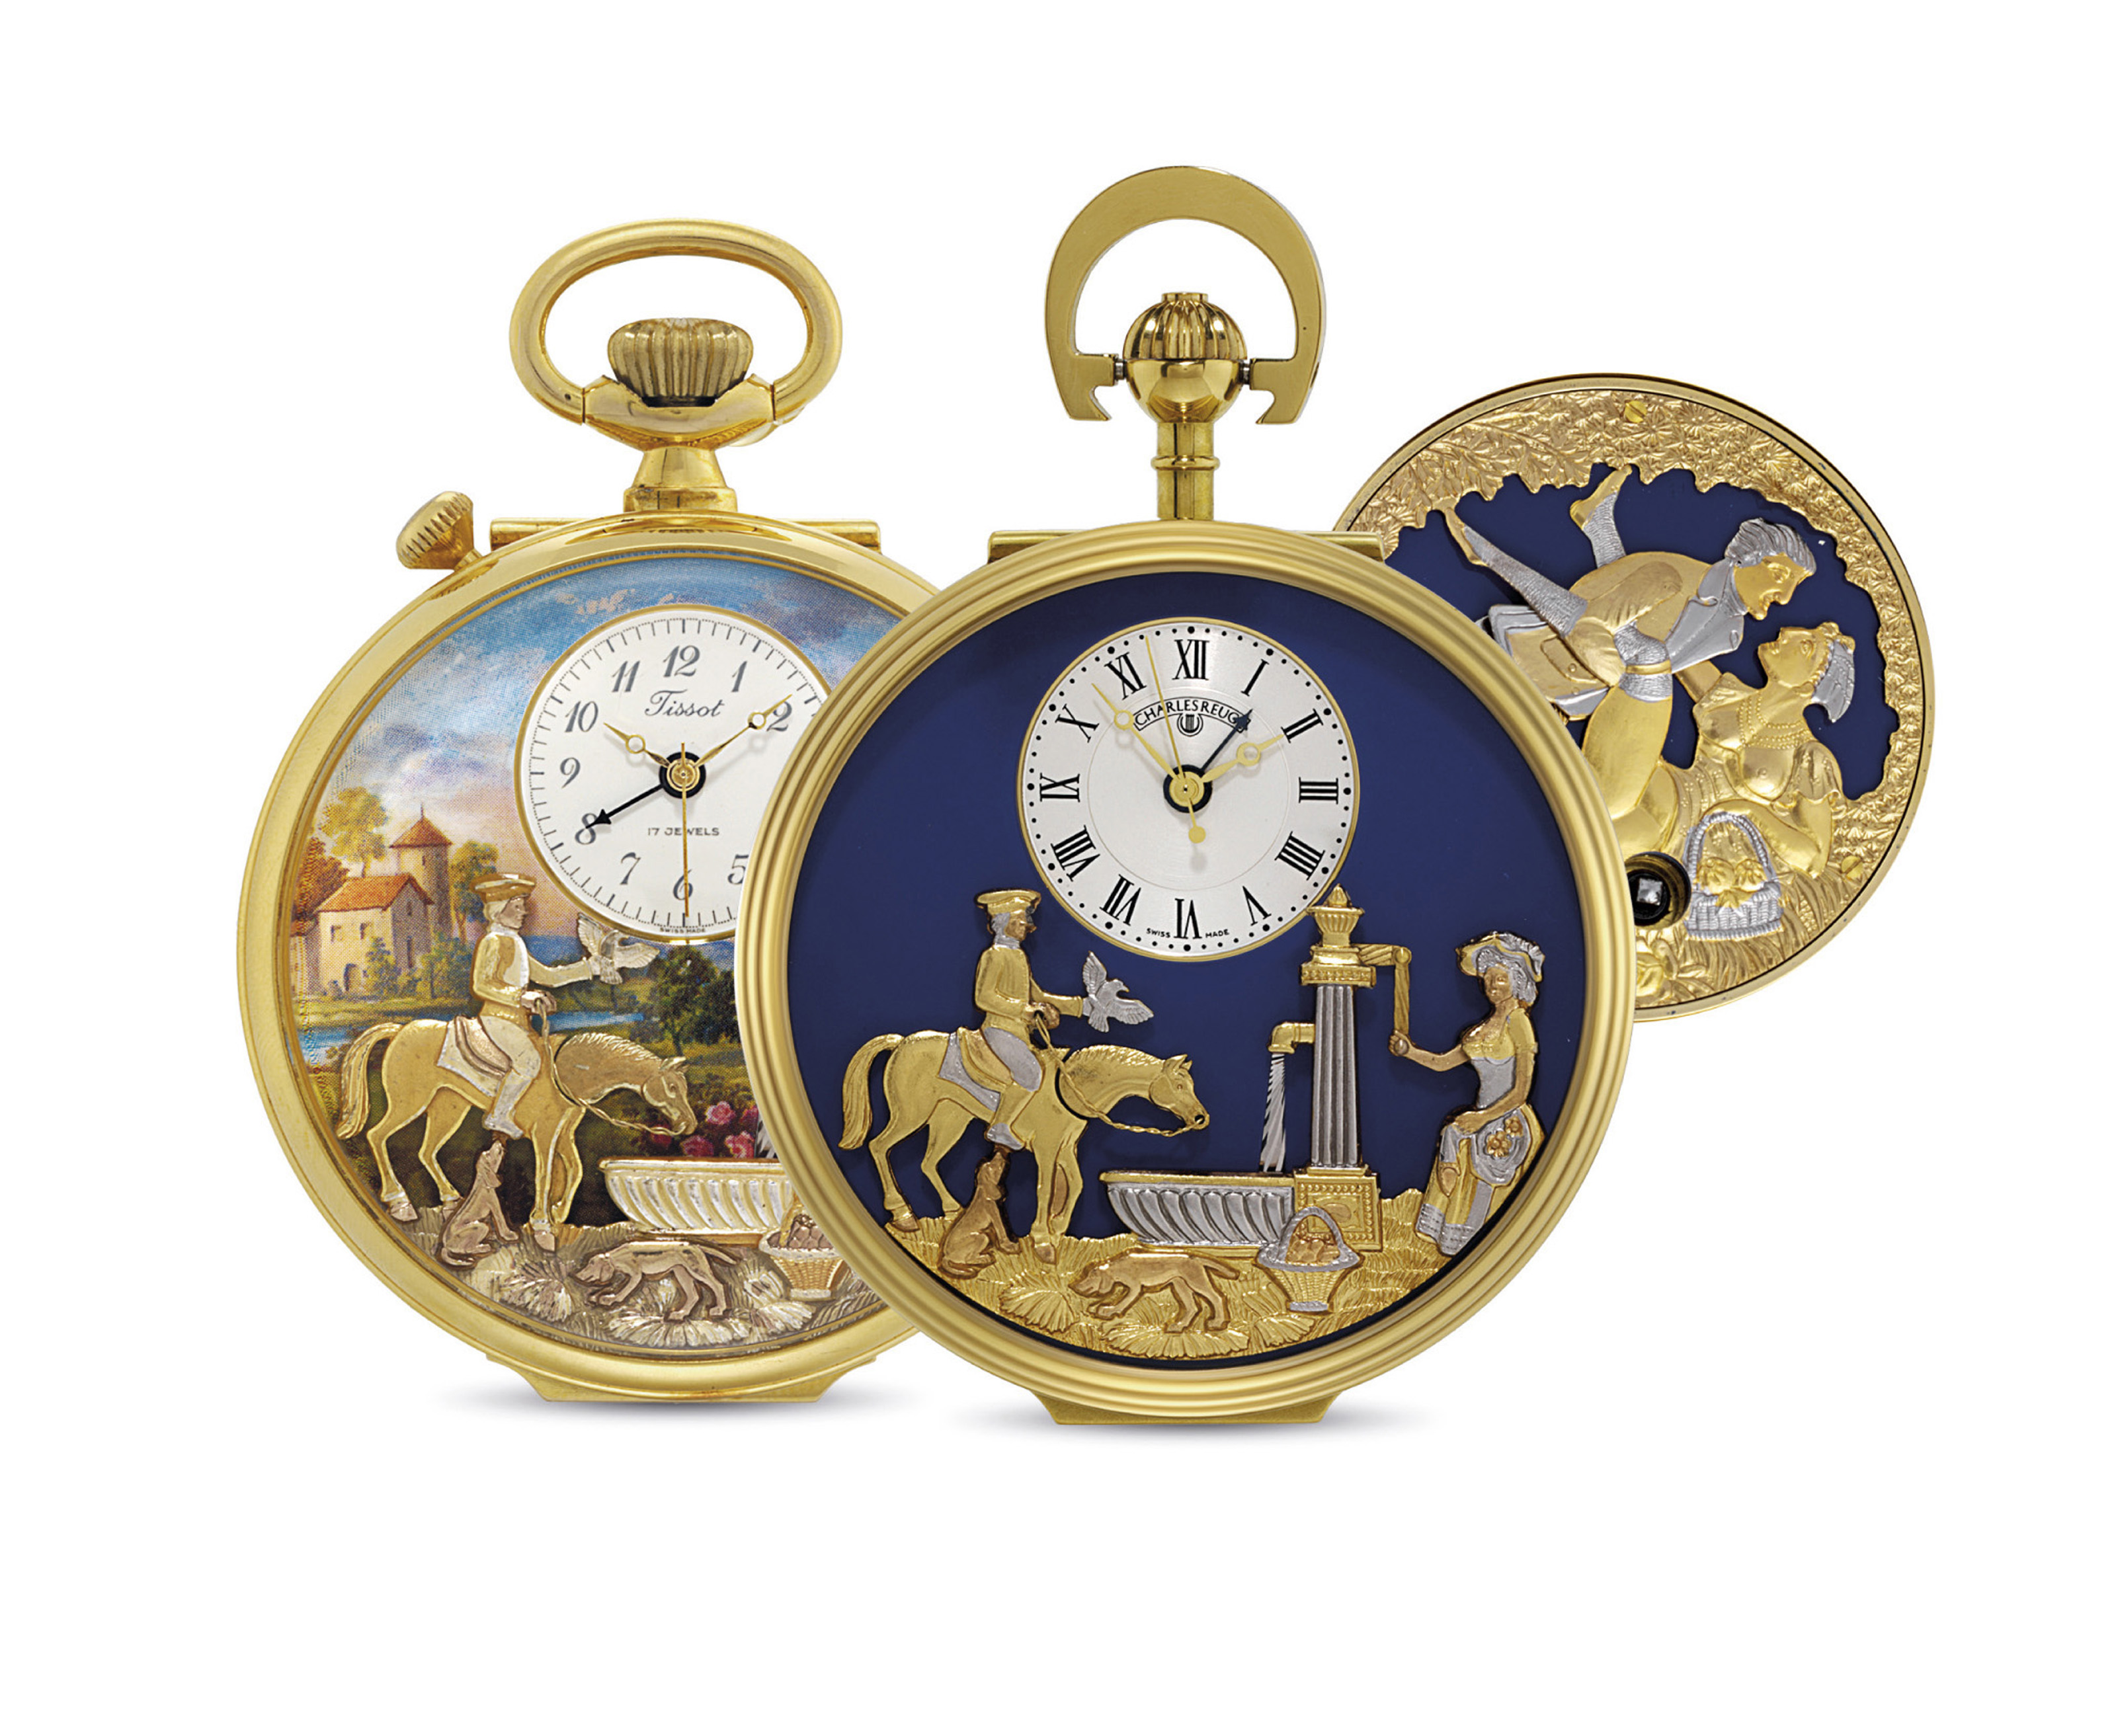 REUGE. A LOT OF TWO GOLD-PLATED OPENFACE KEYLESS LEVER WATCHES WITH MUSICAL AUTOMATON AND ALARM, THE SECOND ALSO WITH CONCEALED EROTIC AUTOMATON